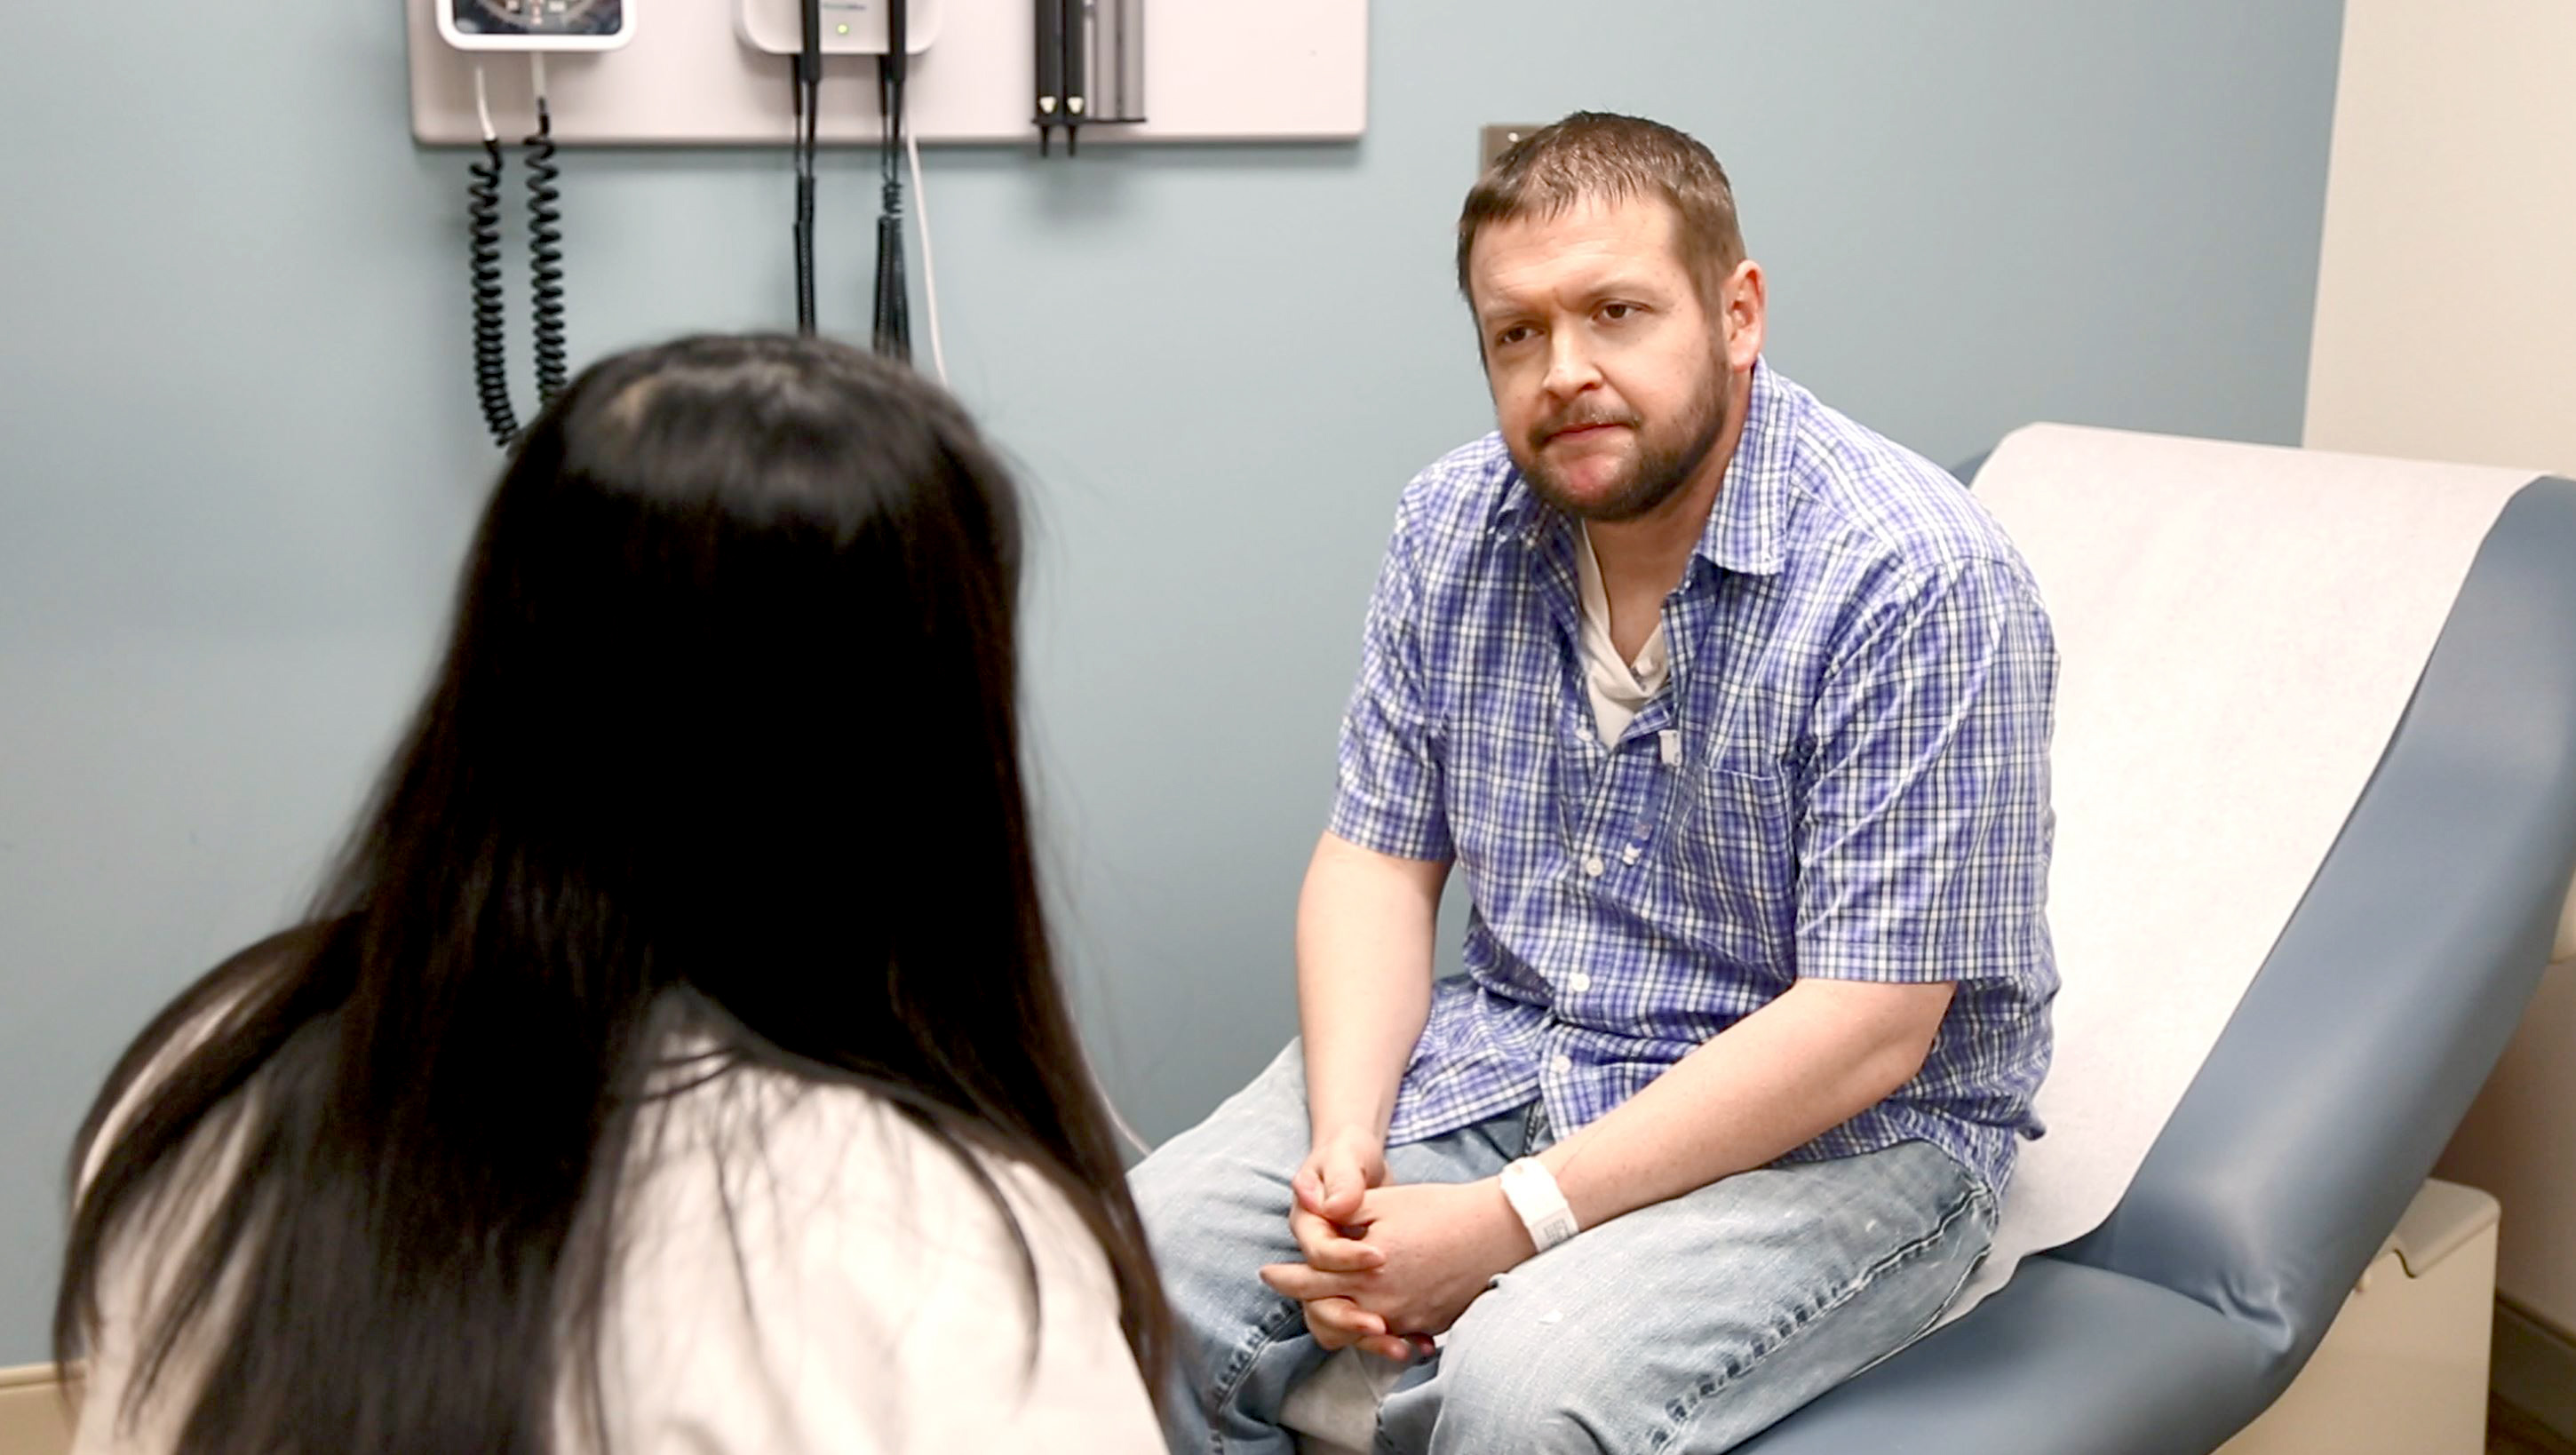 Oncologist talking with patient